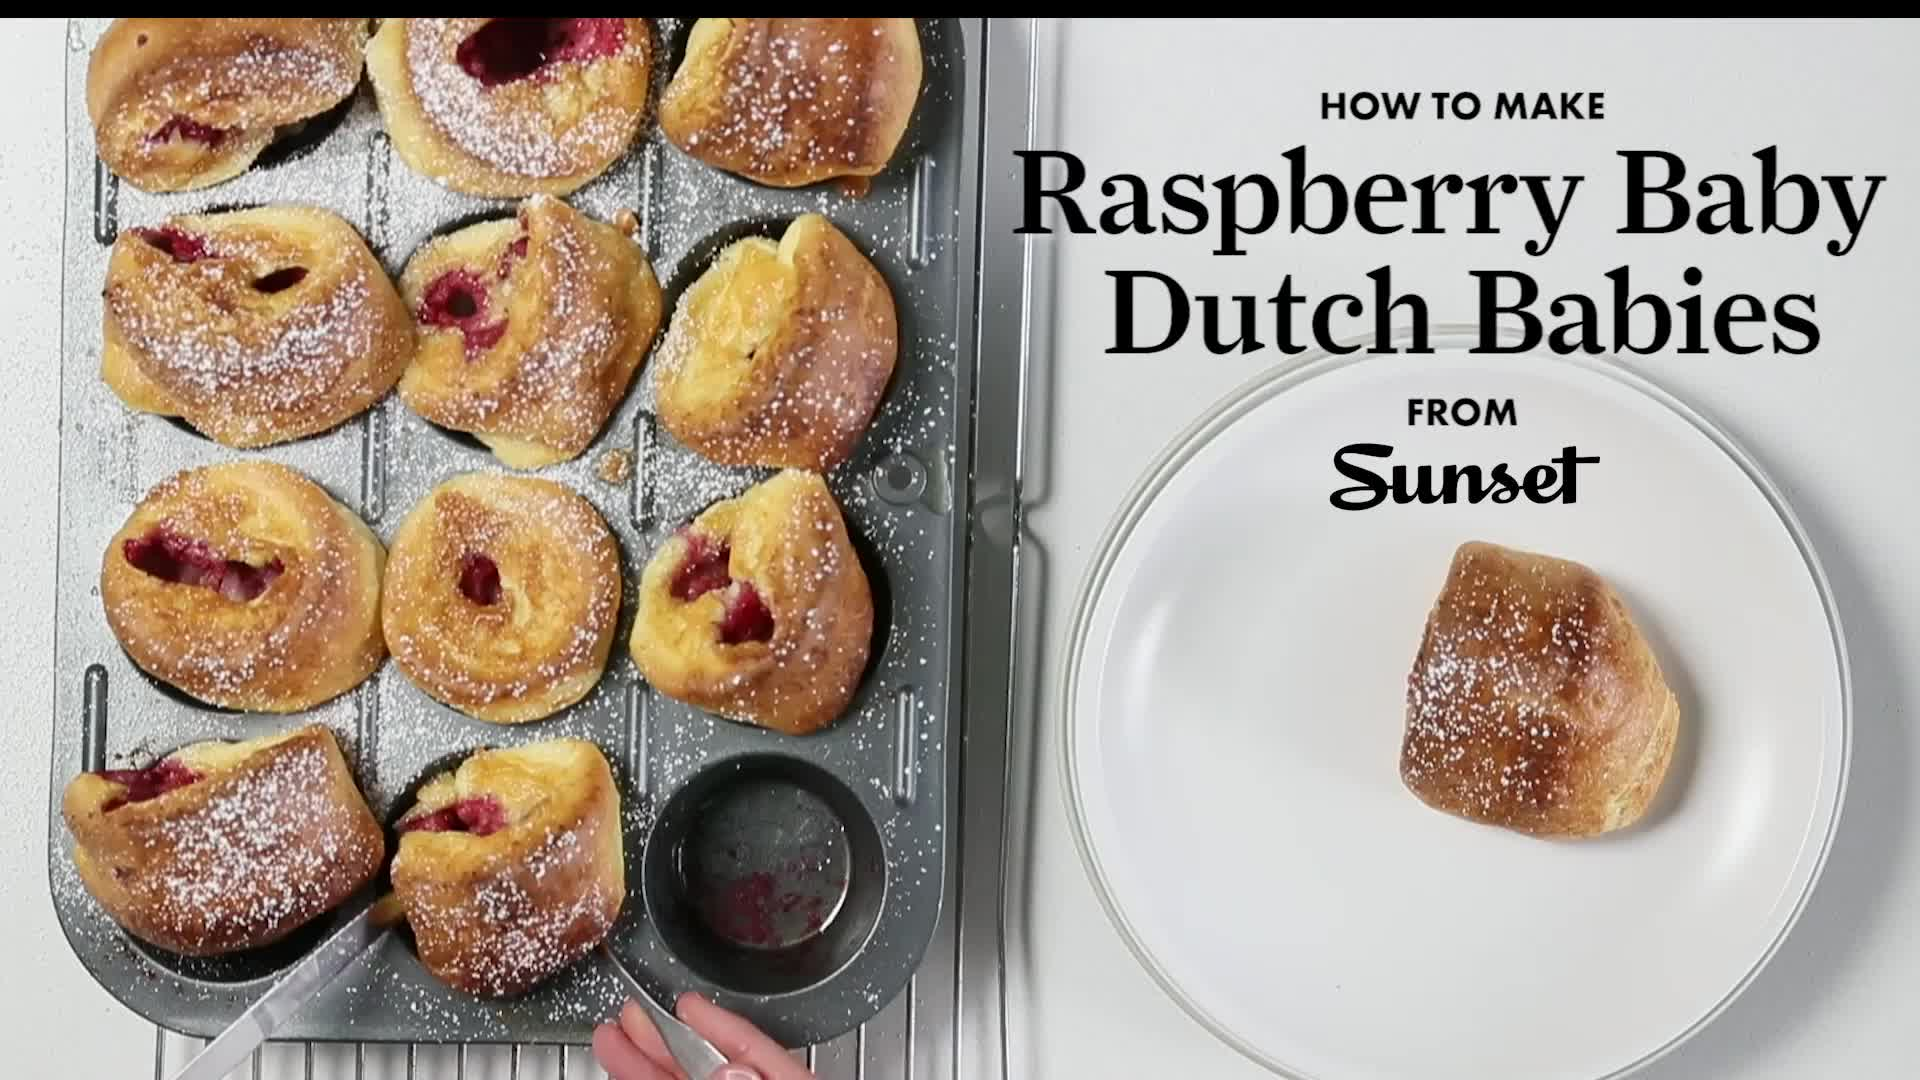 cooking, food, food recipes, recipe, recipes, How to Make Raspberry Baby Dutch Babies Sunset GIFs